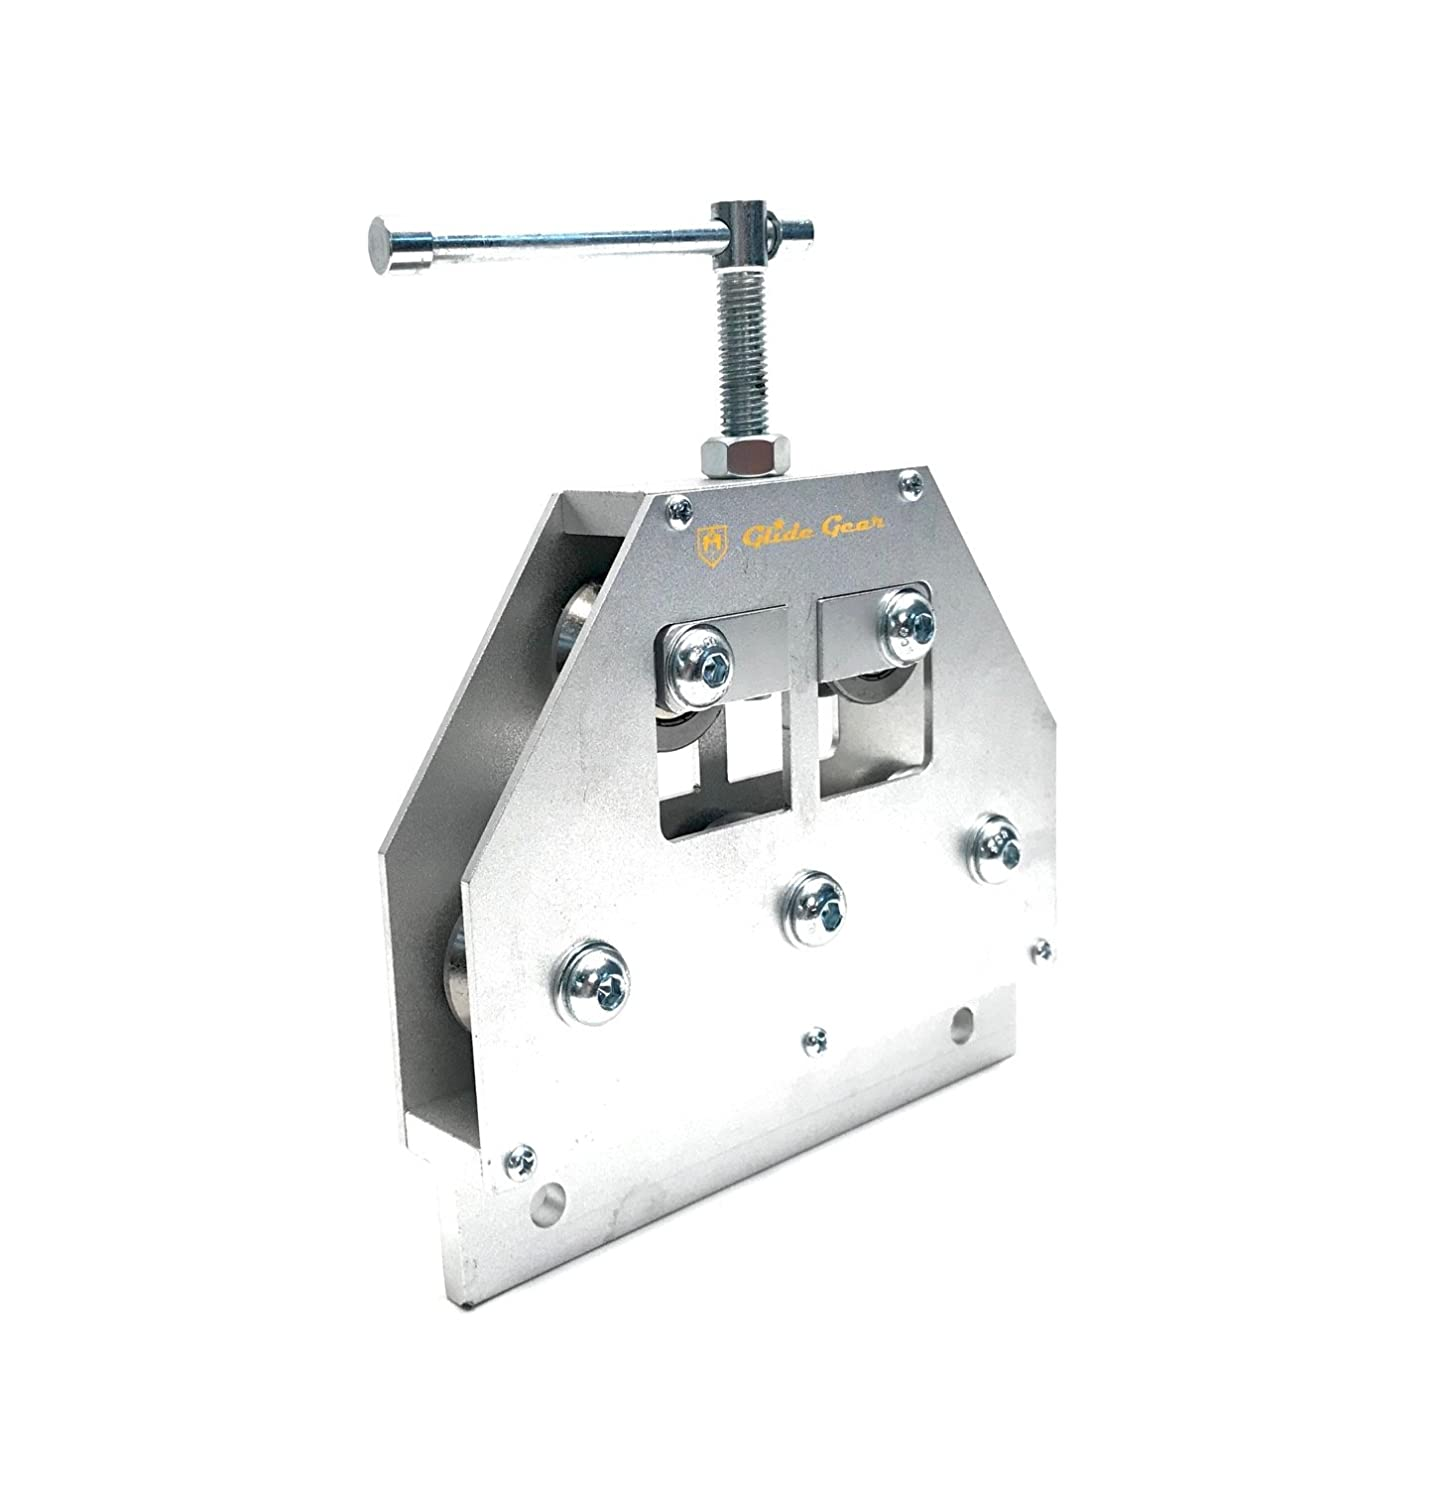 Table Top PS 100 Adjustable 3/16 to 1 inch Tube Tubing Pipe Fuel Line Bench Clamp Straightener Koncept Innovators